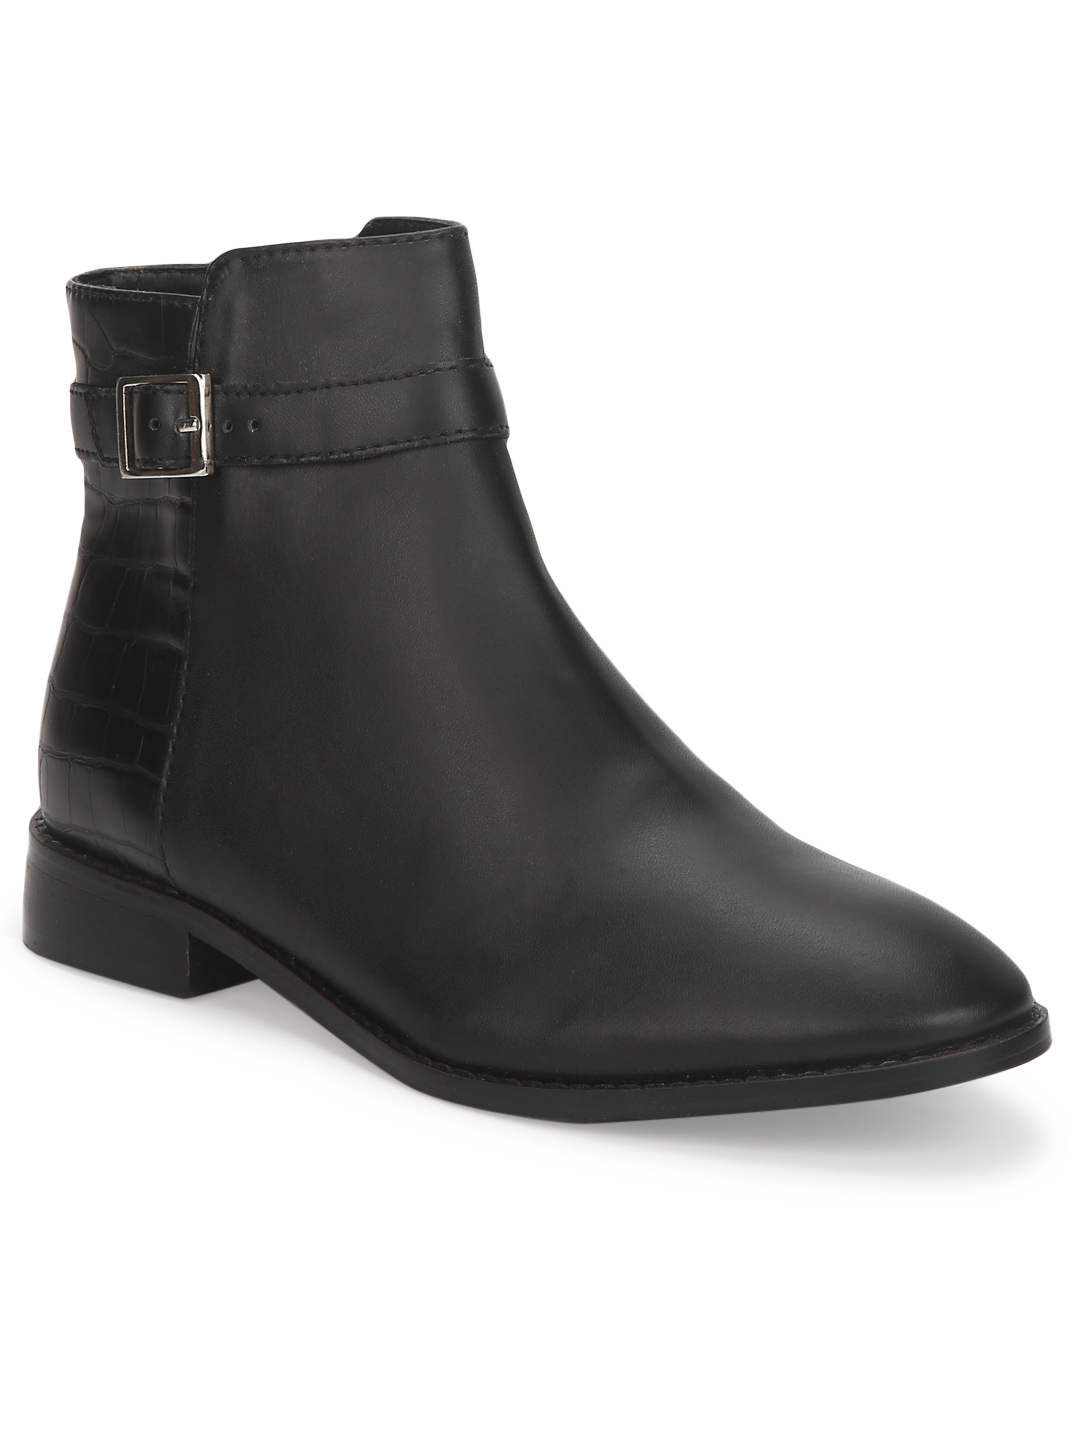 Truffle Collection | Black PU Side Buckle Low Ankle Boots